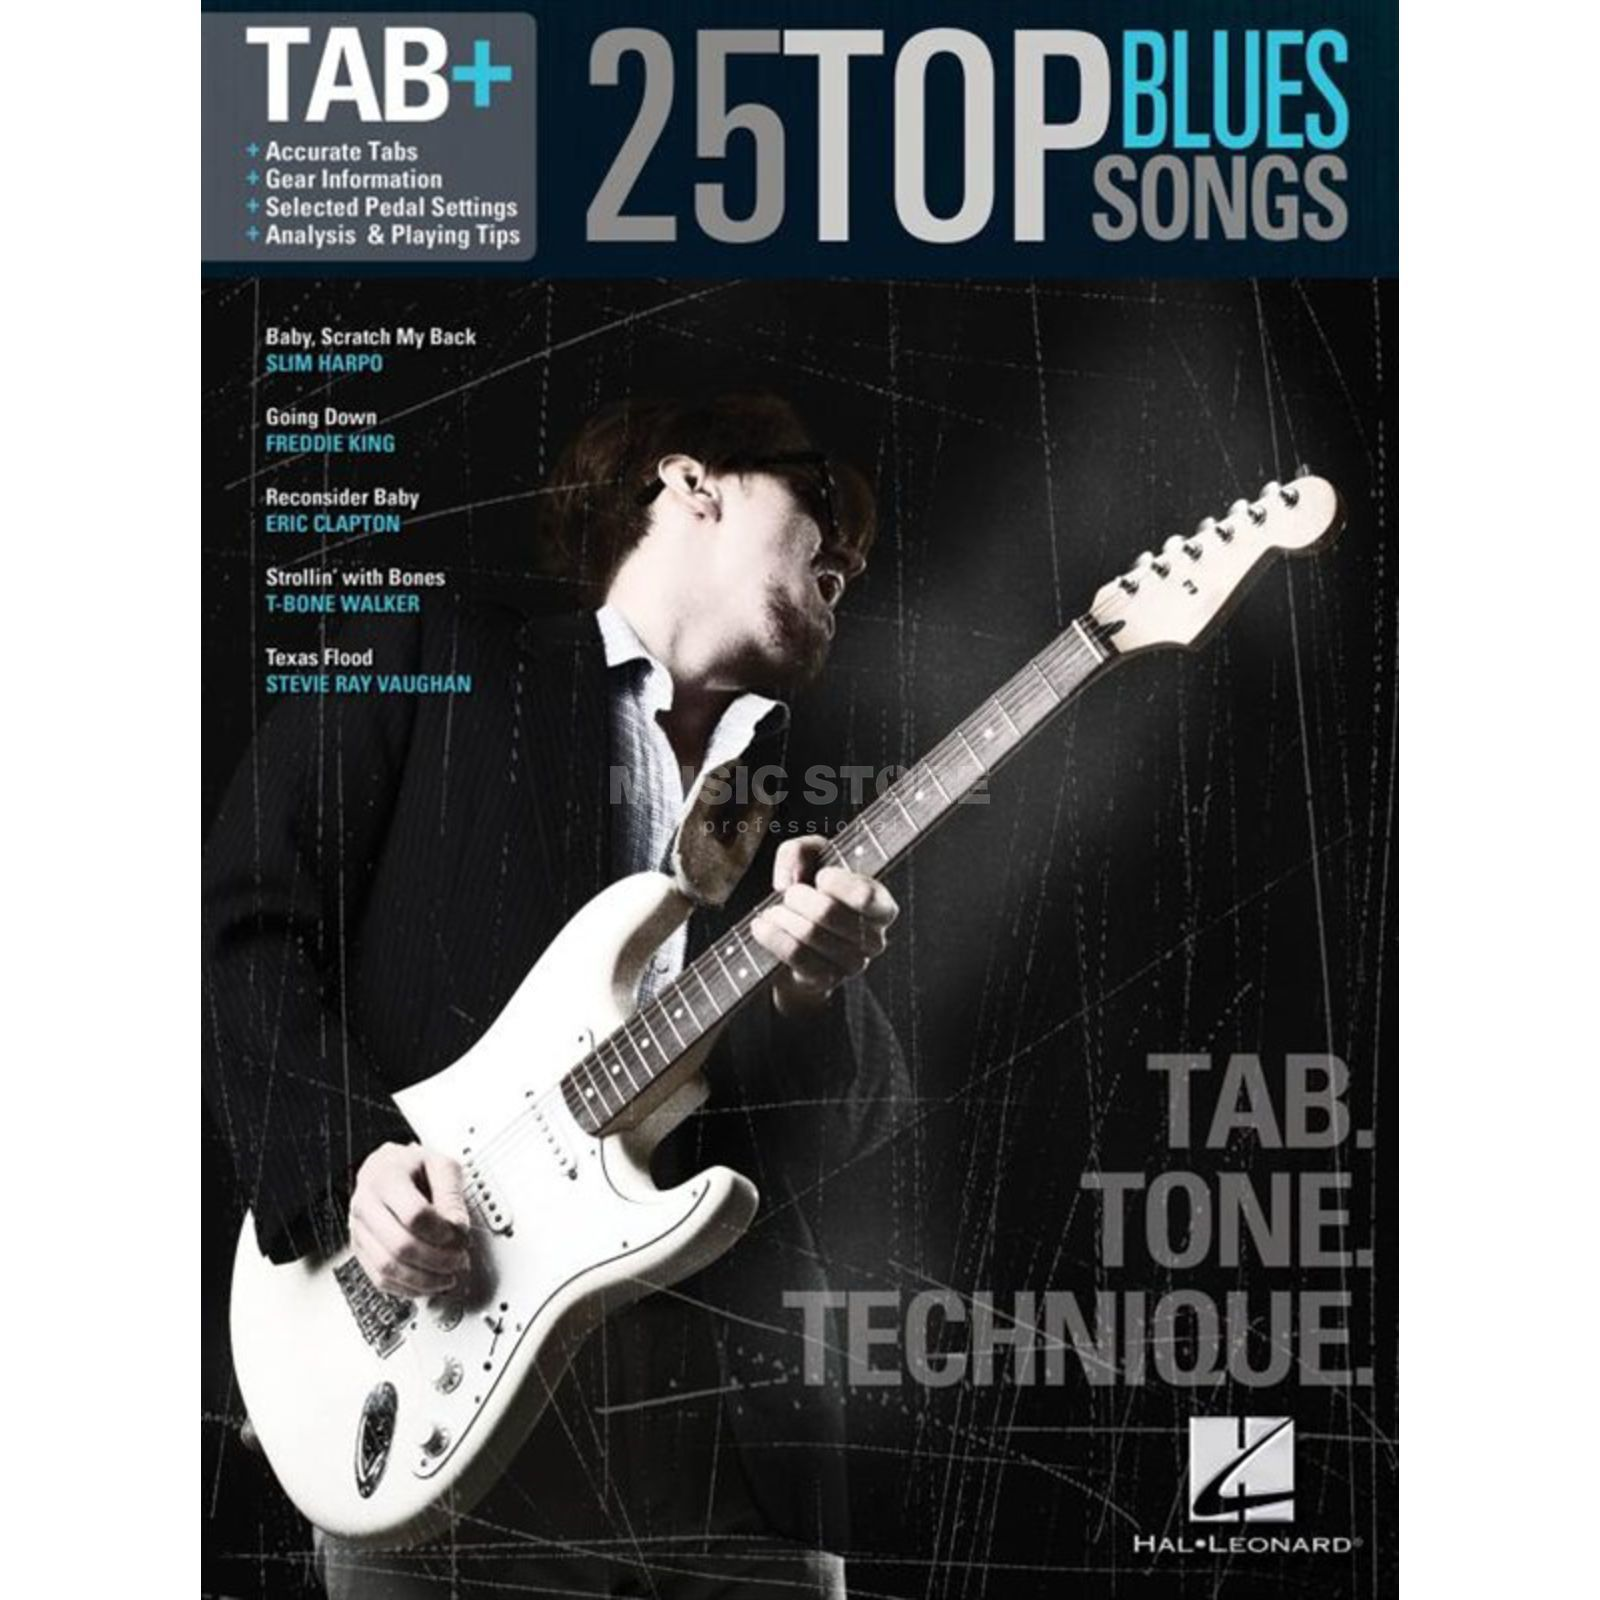 Hal Leonard Tab+: 25 Top Blues Song Tab. Tone. Technique Produktbild